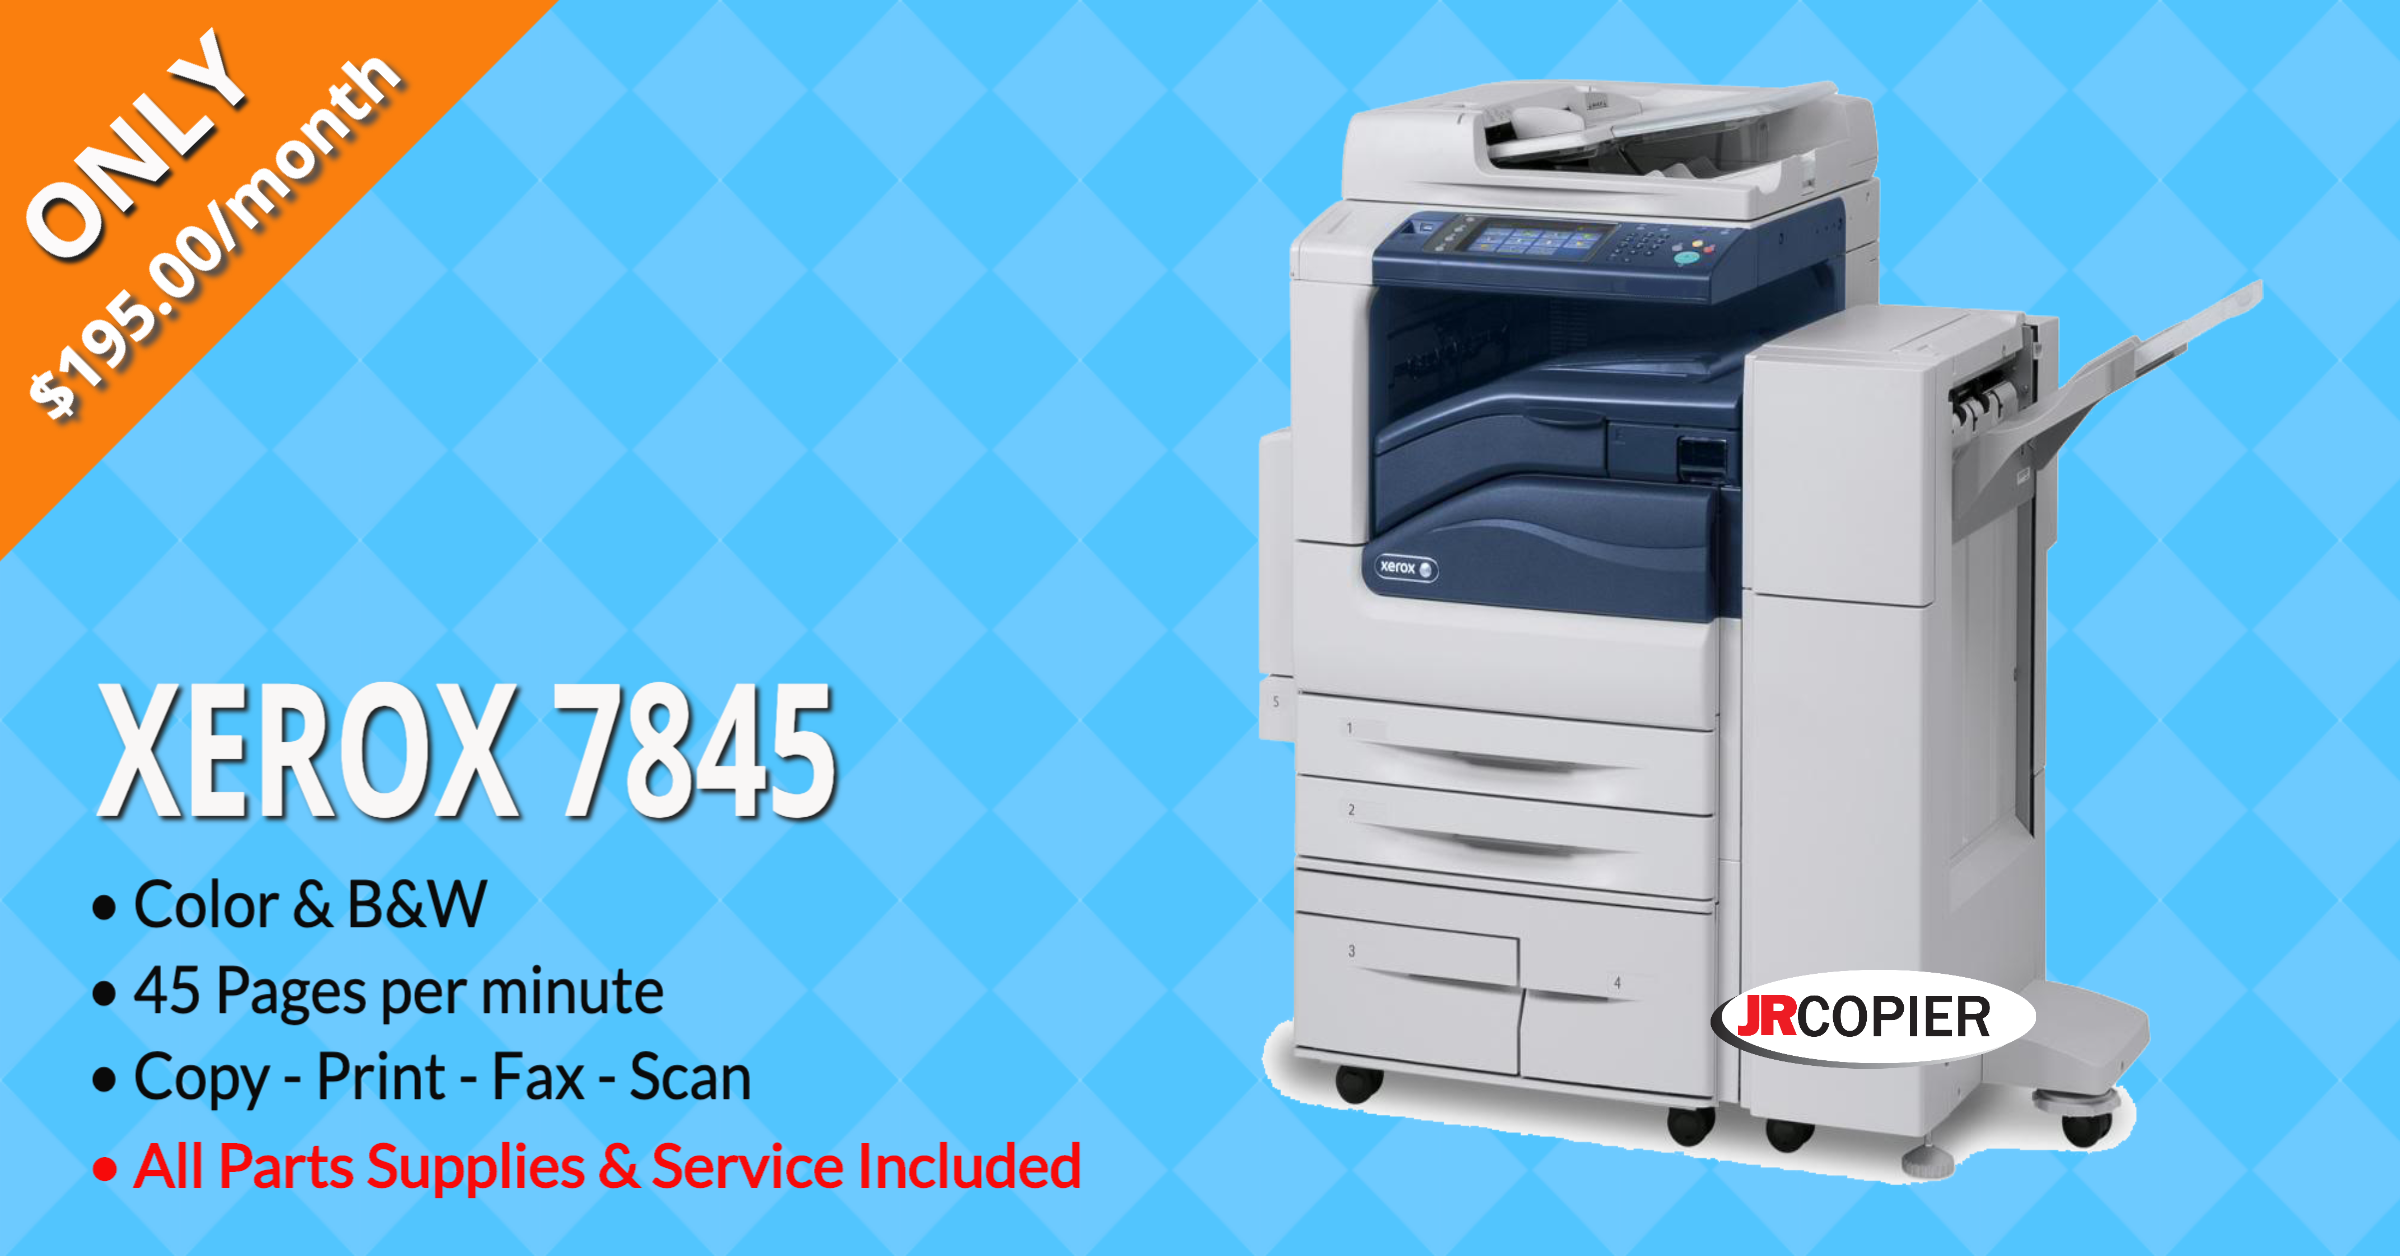 Multifunction Printer Sales 08835